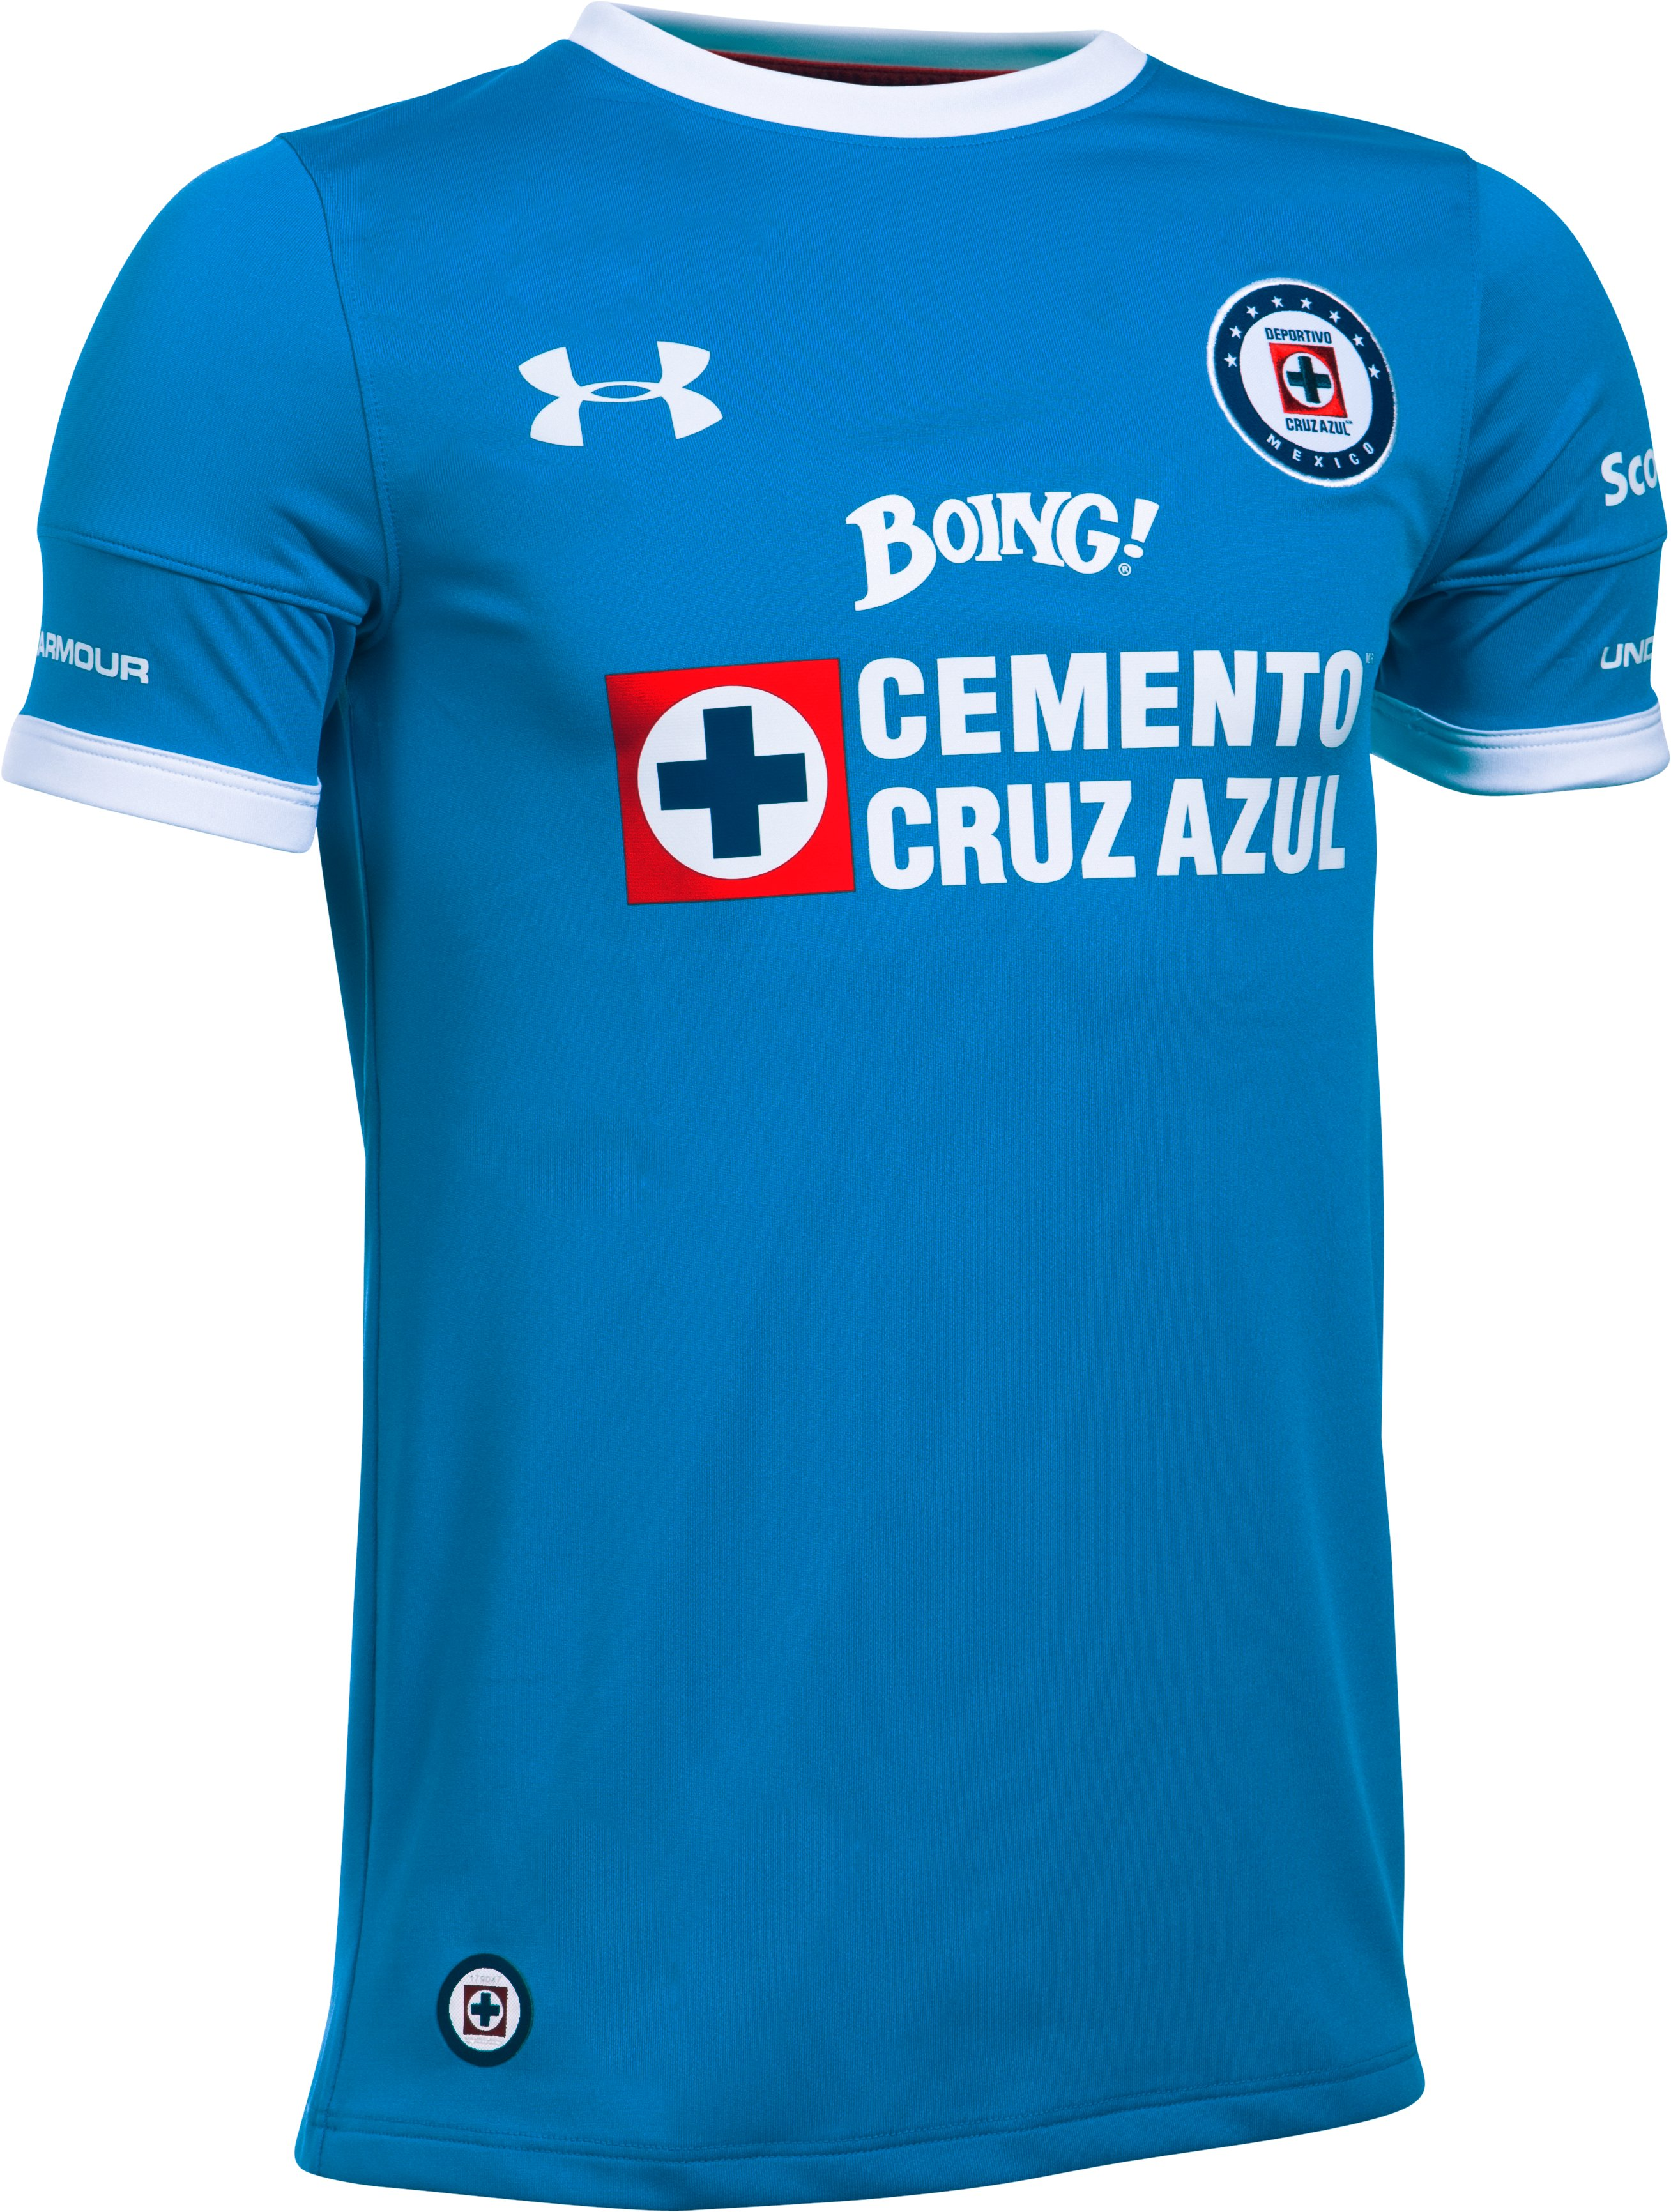 Kids' Cruz Azul 16/17 Home/Third Replica Jersey, Blue Taro